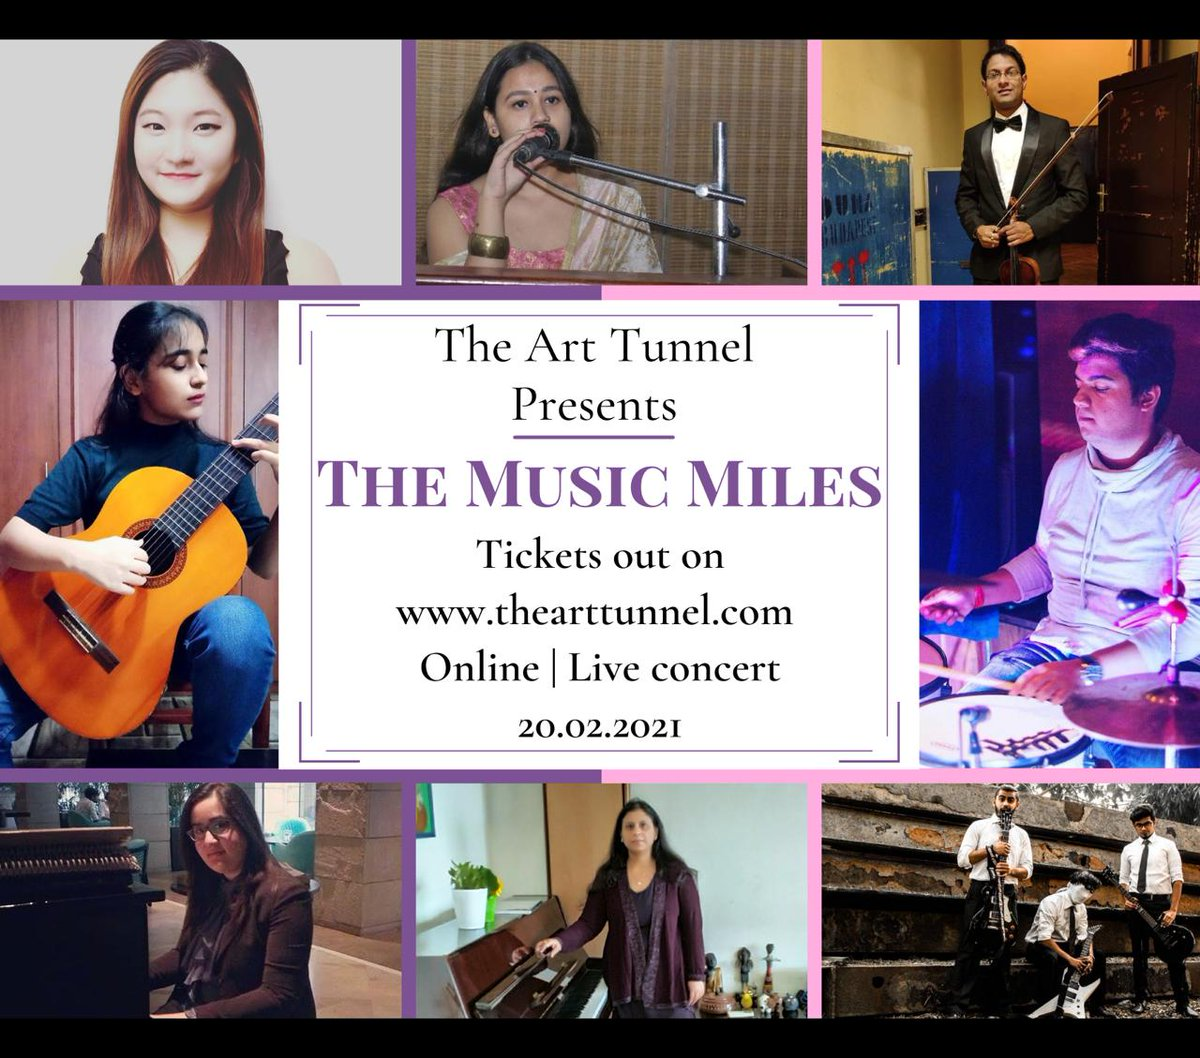 Best of performers going to perform for THE MUSIC MILES.  Book your tickets now    #artistsontwitter #WishMusicAwards #concert #GRAMMYs #musician #musicconcert #Jazz #contemporary #Broadway #ClassicalMusic #paytminsider #Paytm